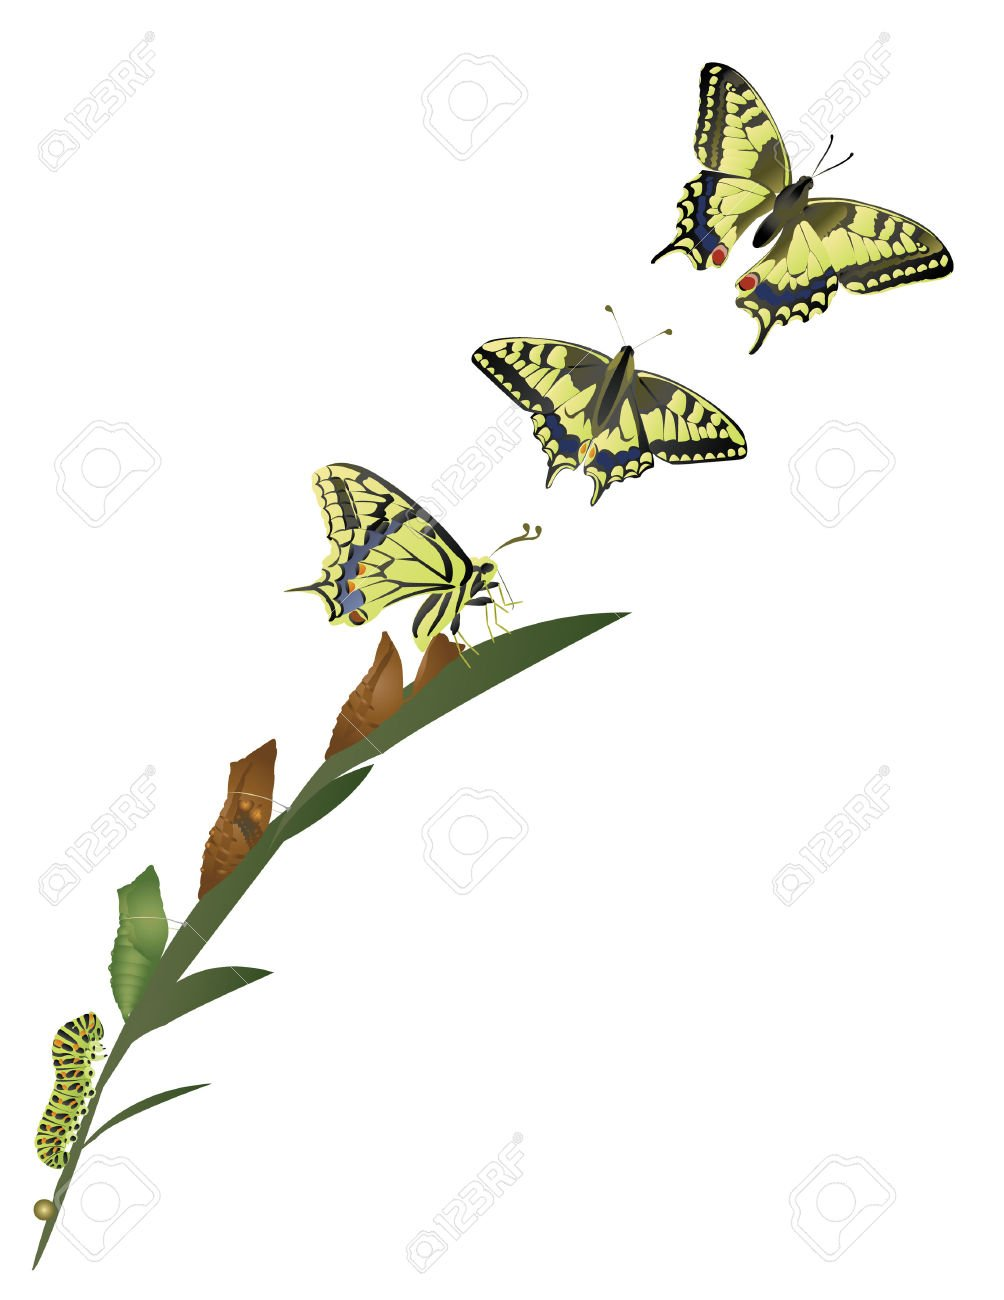 25967032-Life-cycle-of-butterfly--Stock-Vector-butterfly-caterpillar-metamorphosis